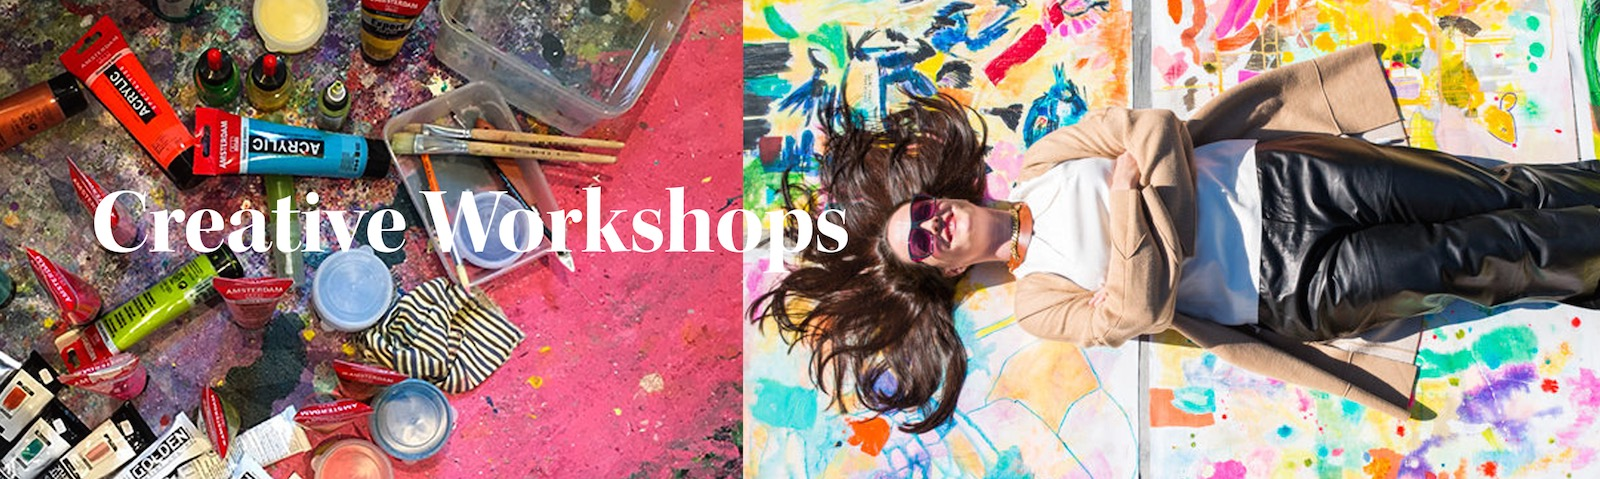 Creative Workshops - A creative mind is a happier mind